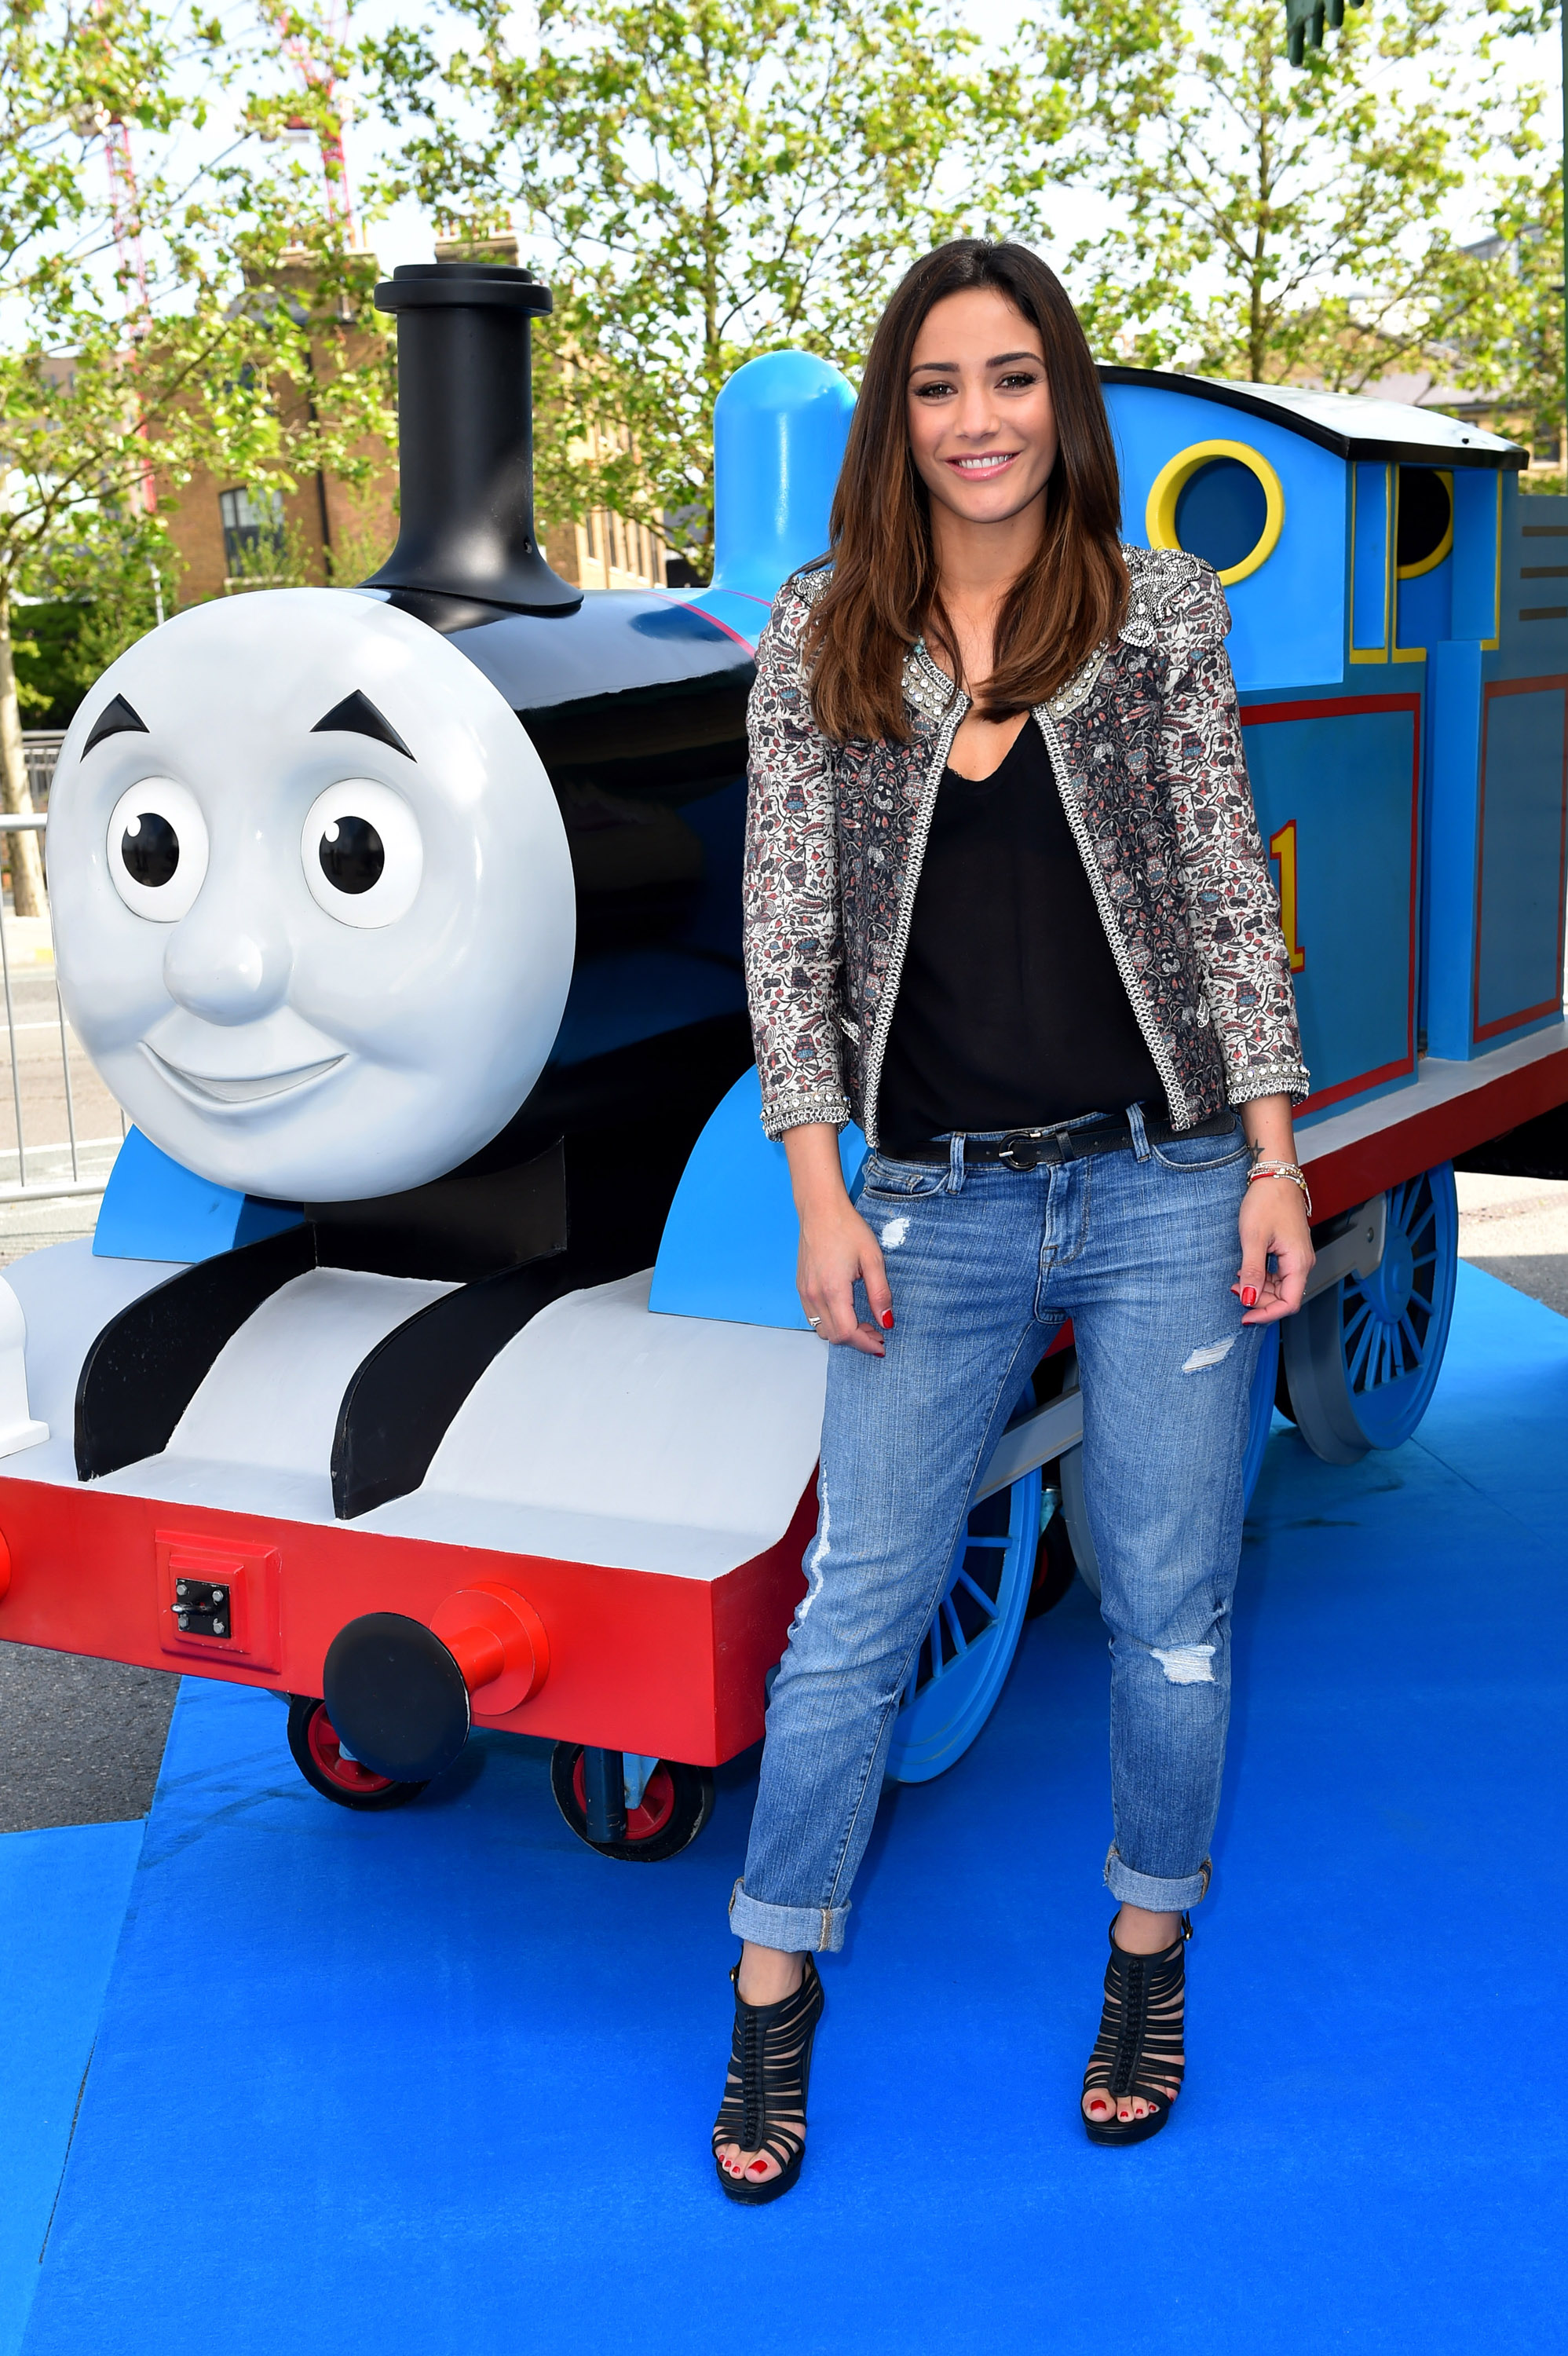 Thomas The Great Race premiere with Frankie Bridge